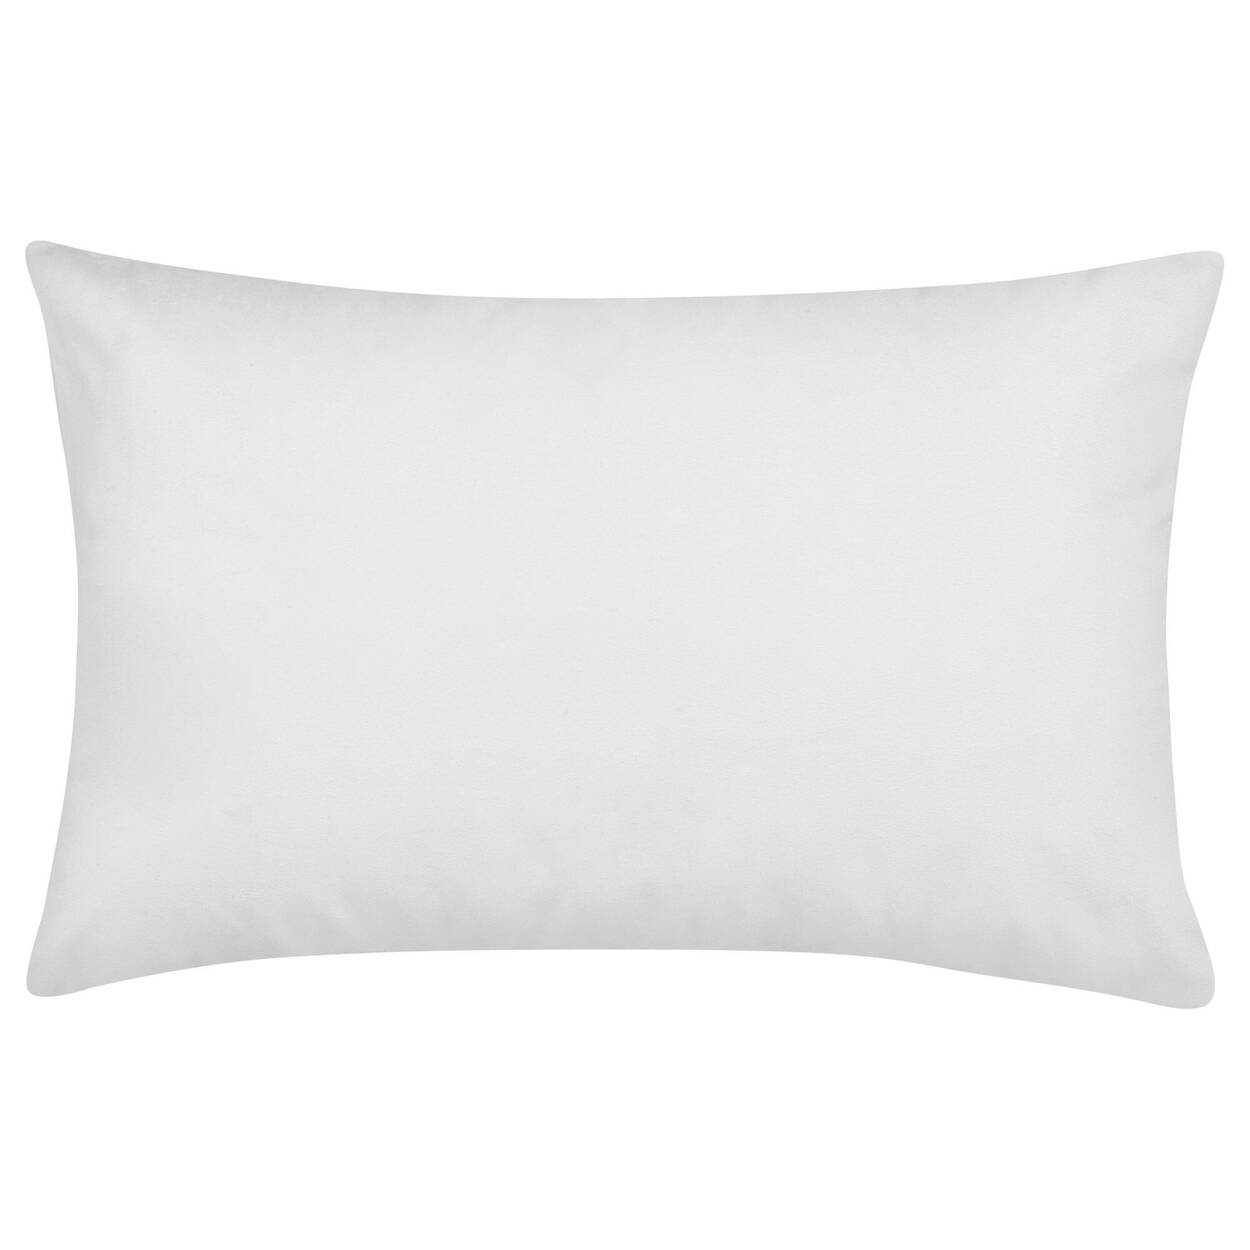 "Flora Decorative Lumbar Pillow 13"" x 20"""